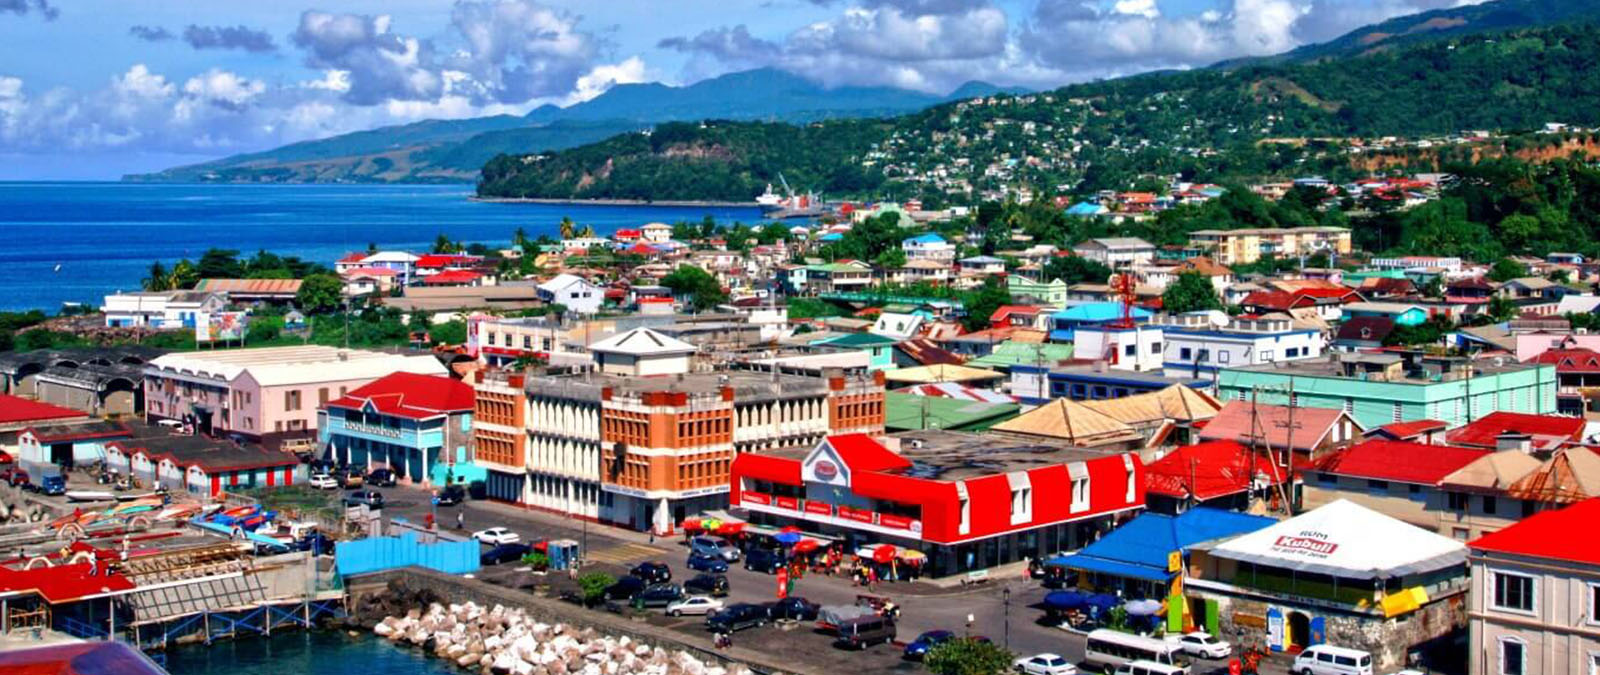 Dominica Citizenship by Investment is a reputable program that has been in operation since 1993 and is legally guaranteed by Dominican law.